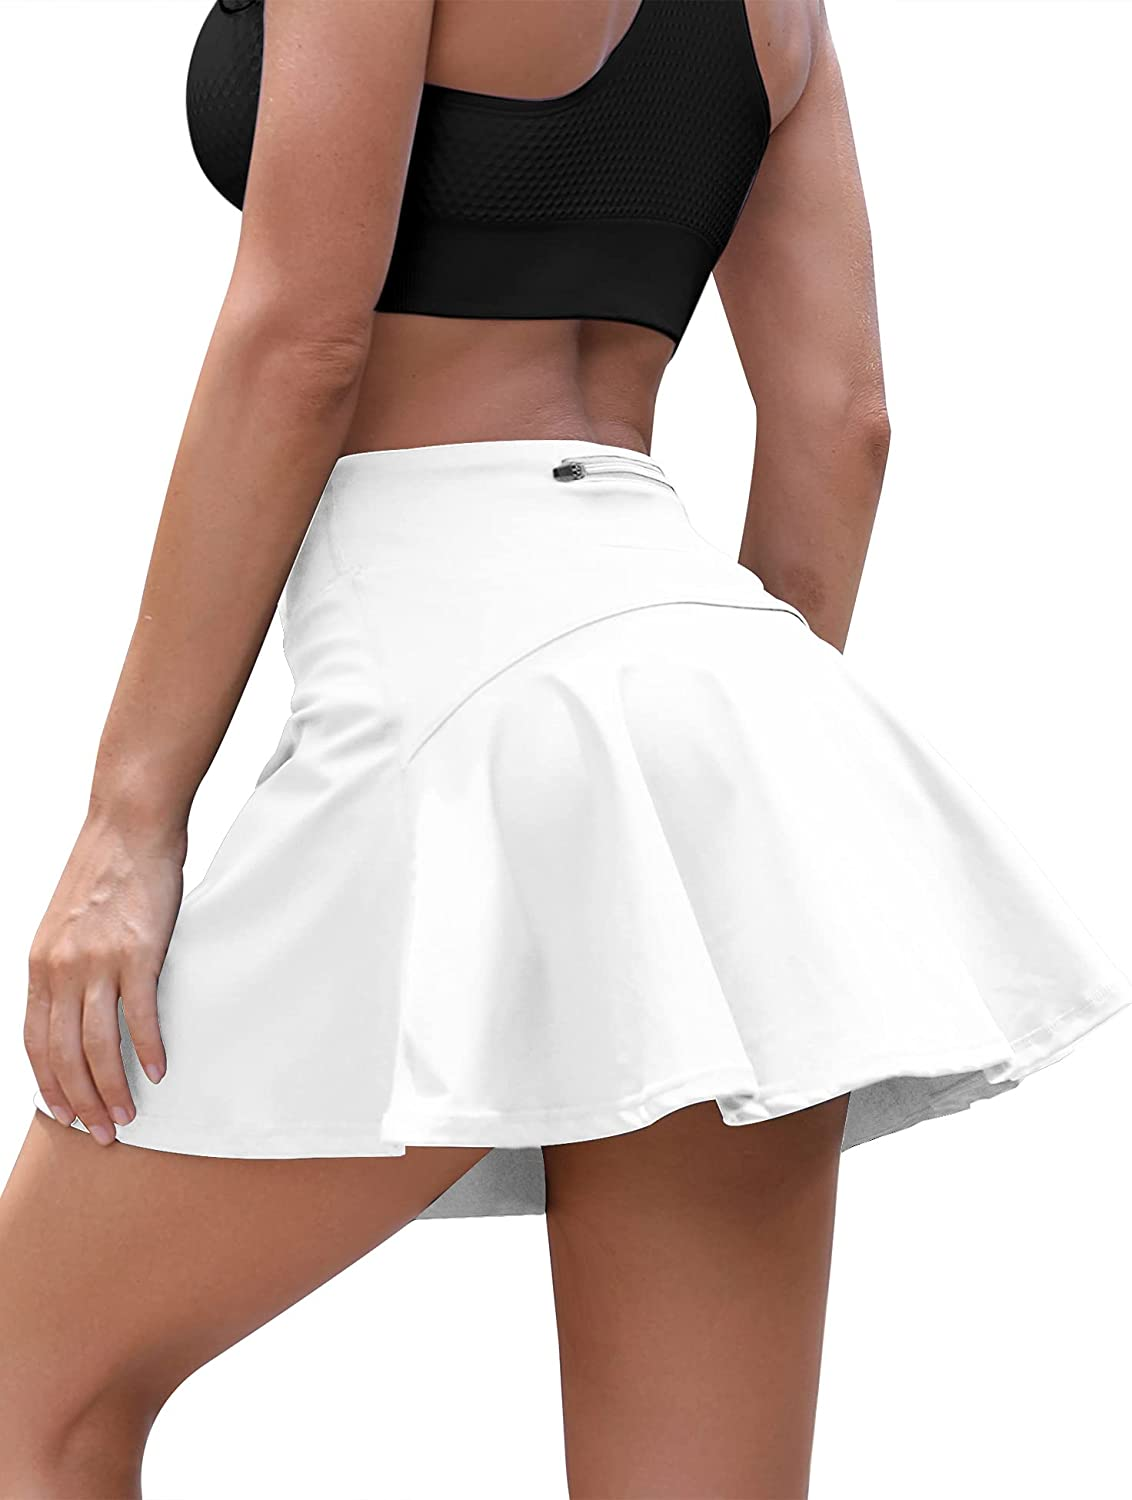 Loovoo Women's Tennis Skirt with Skorts Pockets Golf Waist In a popularity Max 58% OFF High